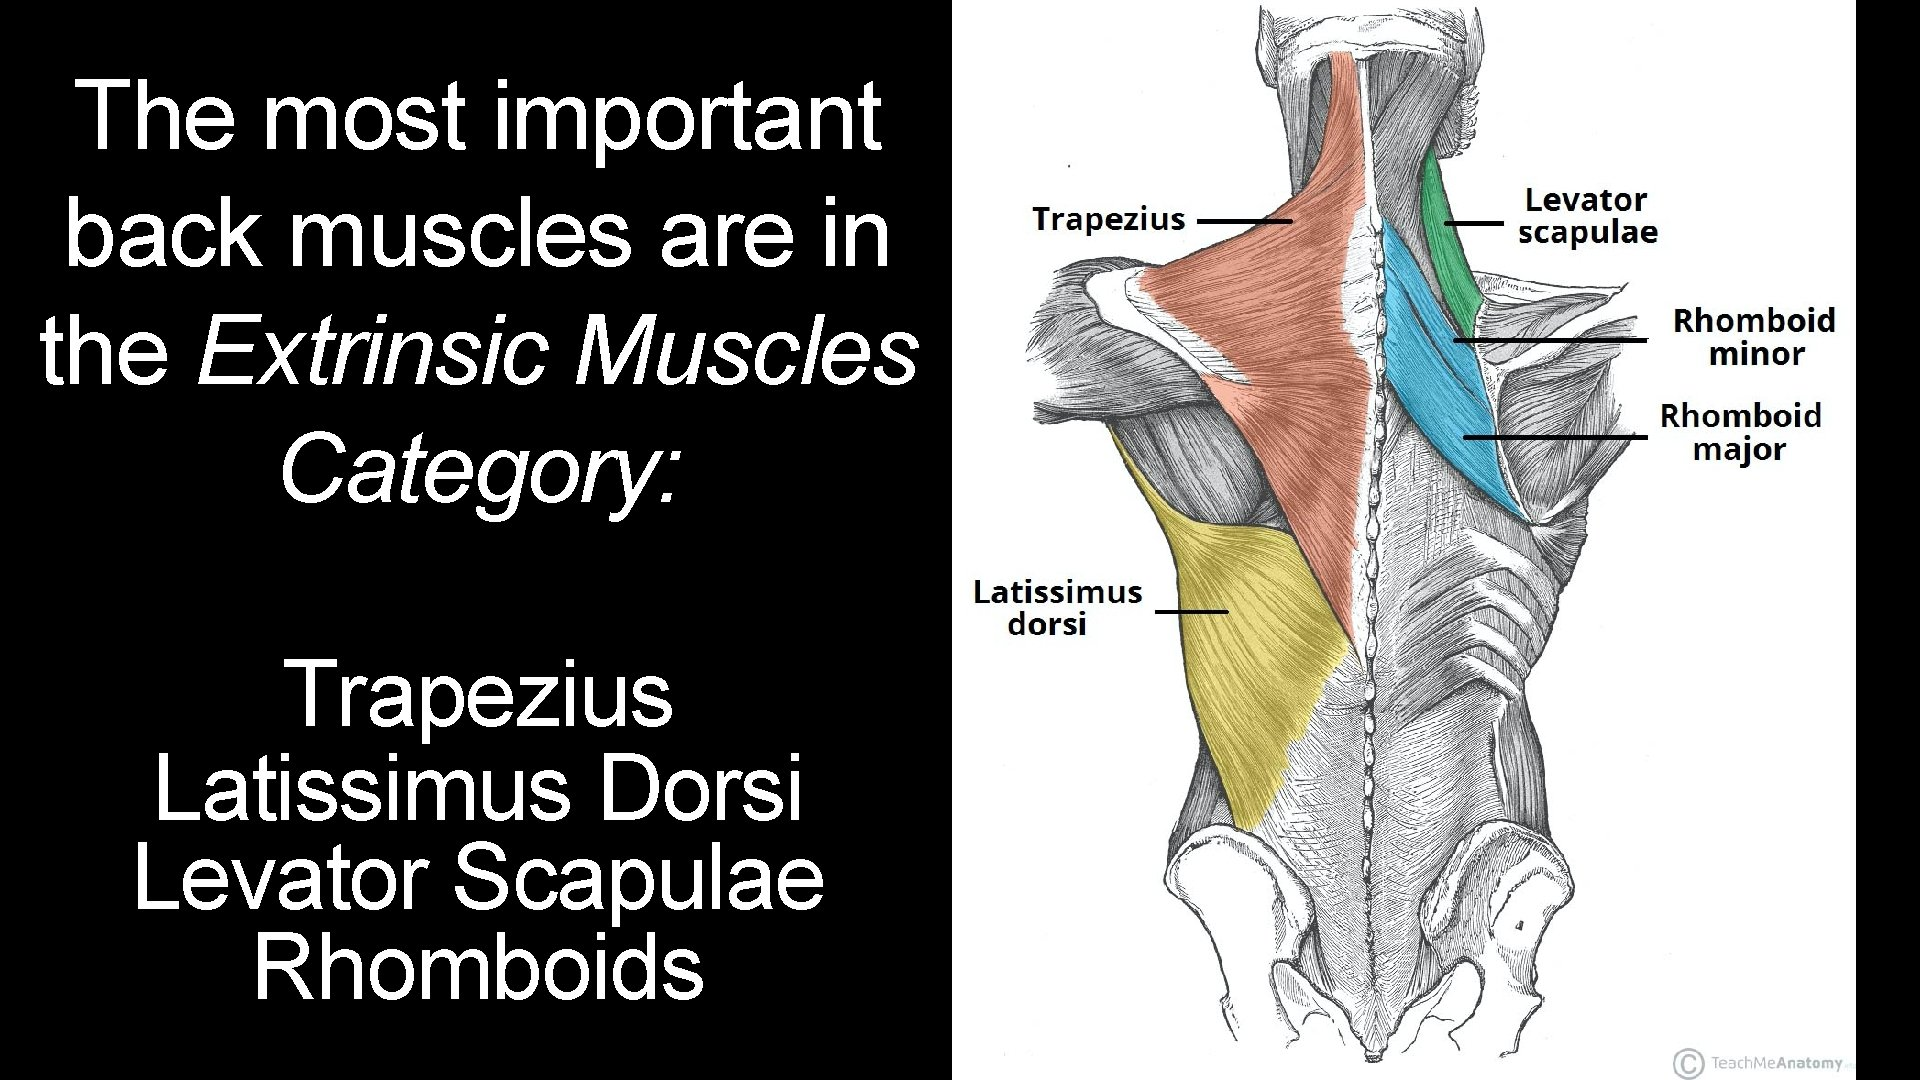 The most important back muscles are in the Extrinsic Muscles Category: Trapezius Latissimus Dorsi